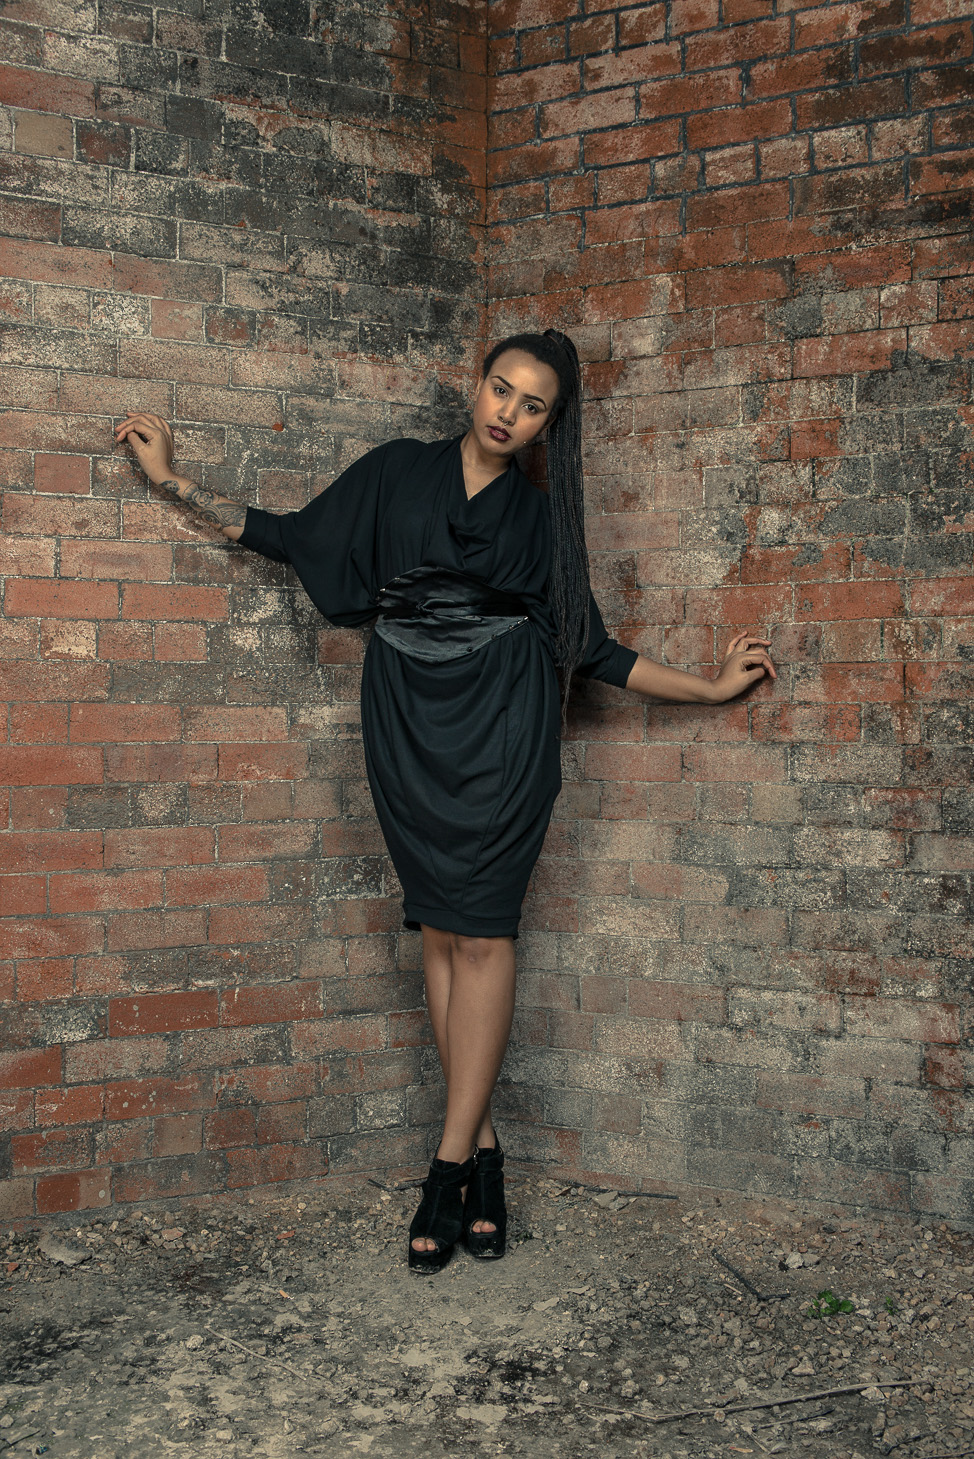 zaramia-ava-zaramiaava-leeds-fashion-designer-ethical-sustainable-tailored-minimalist-aya-dress-versatile-drape-black-belt-wrap-cowl-styling-womenswear-models-photoshoot-location-15